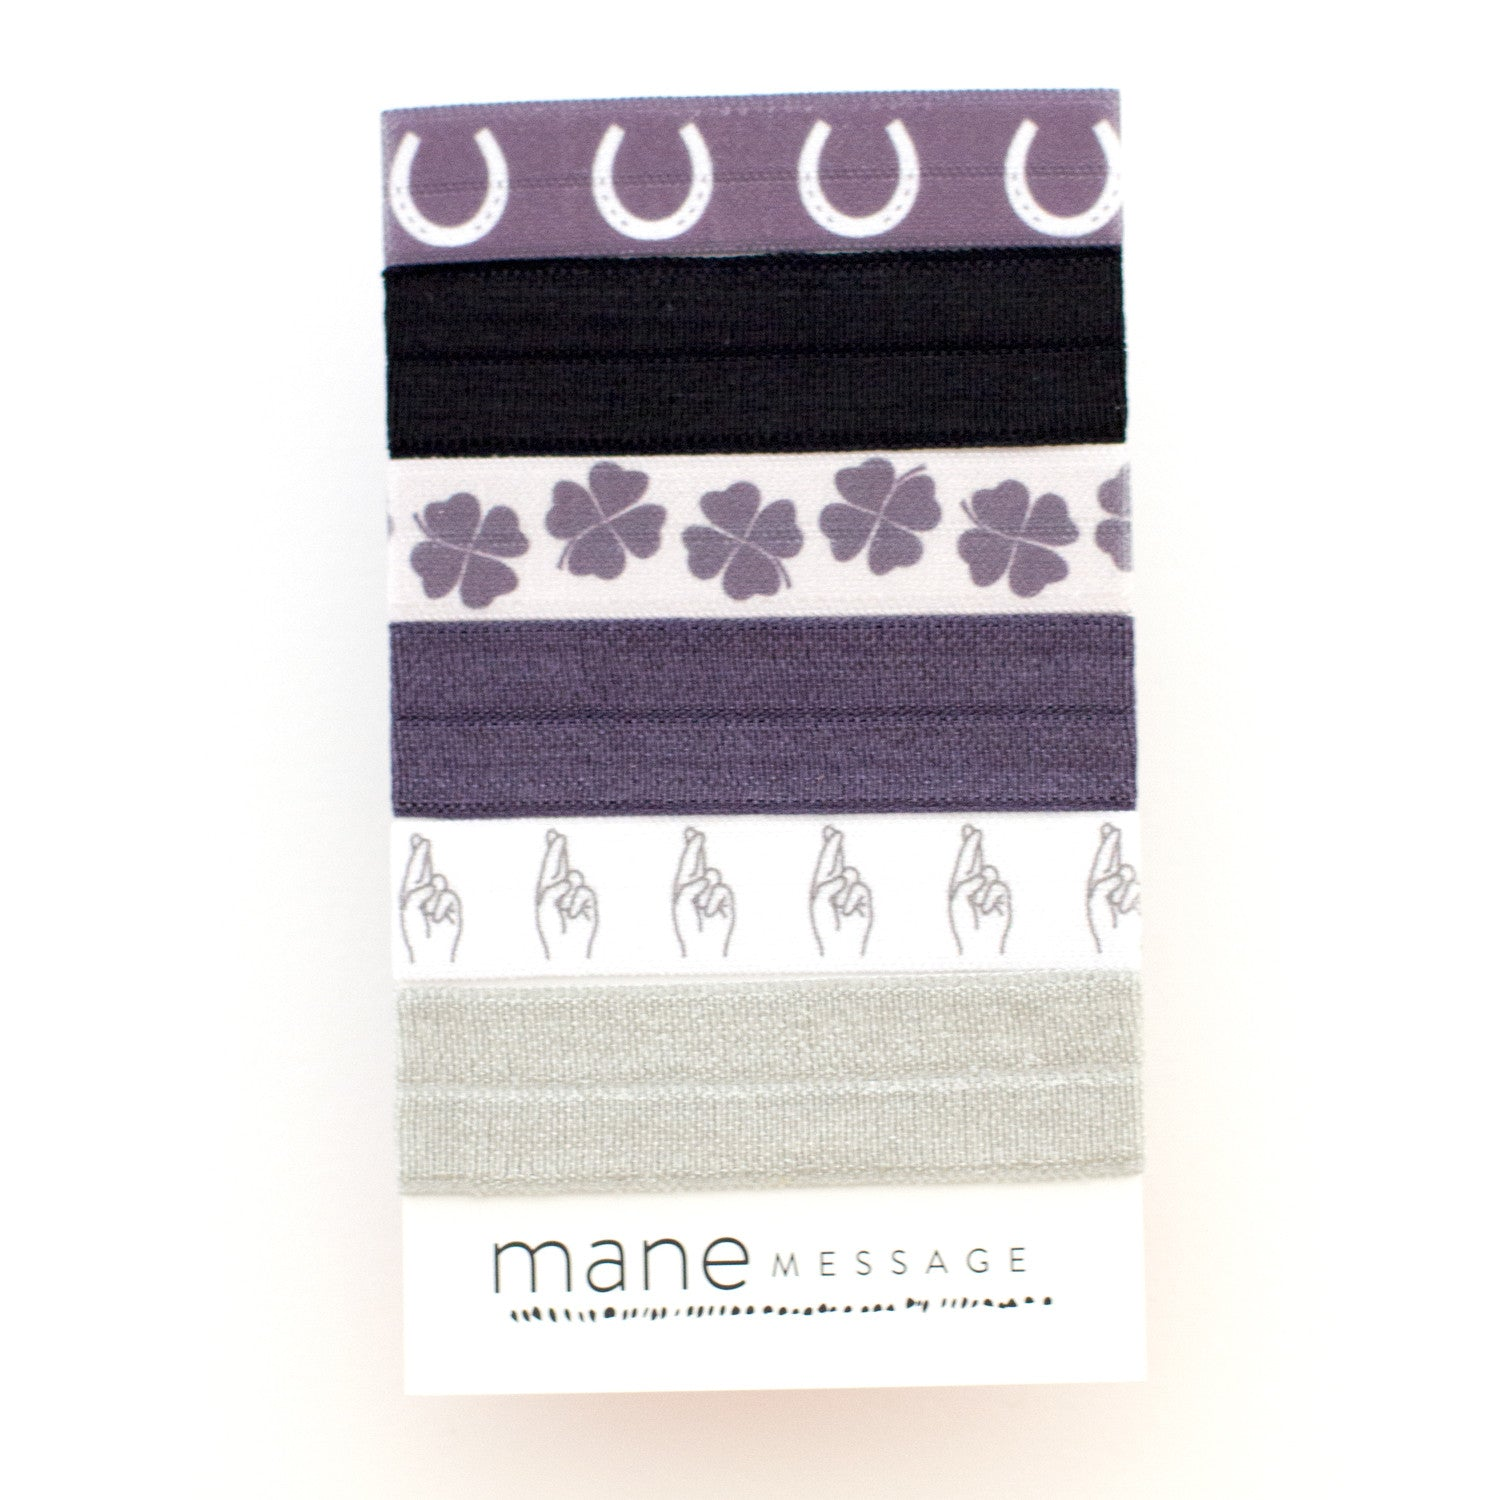 horseshoes four leaf clovers fingers crossed good luck hair tie package by mane message and style stock